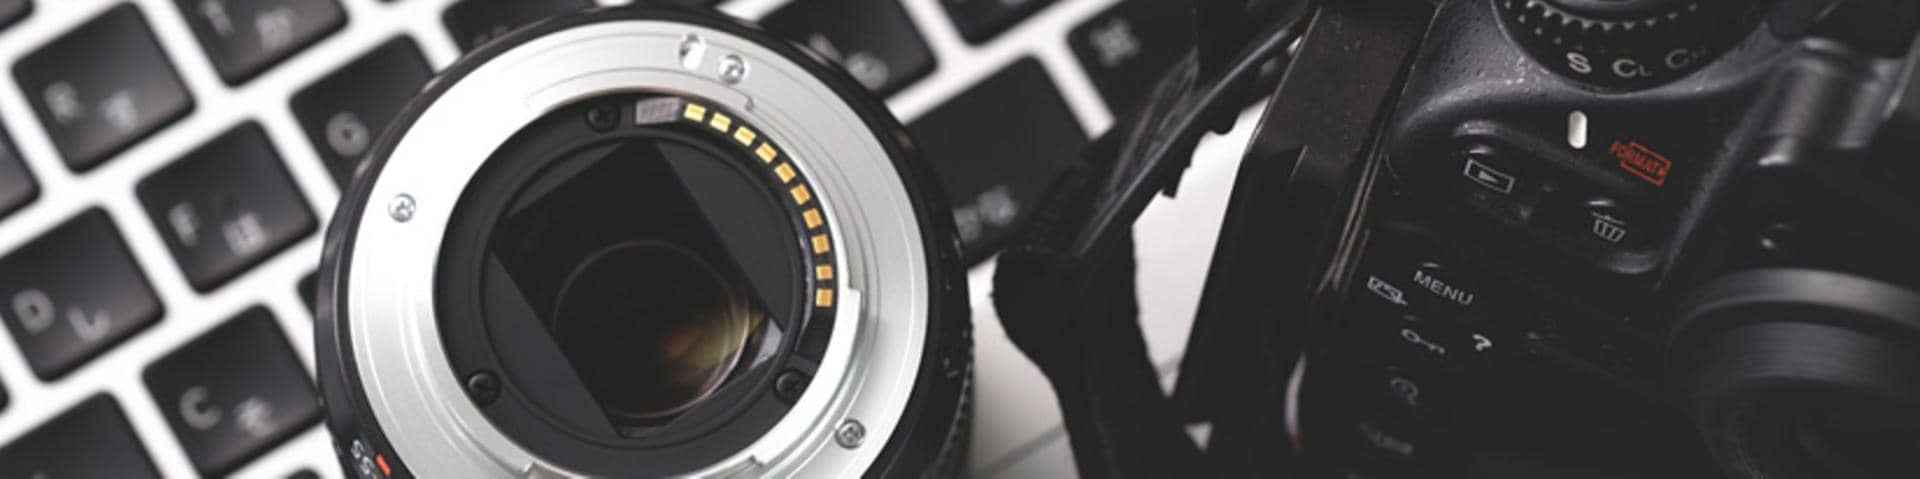 camera_lenses_notebook_db_schenker